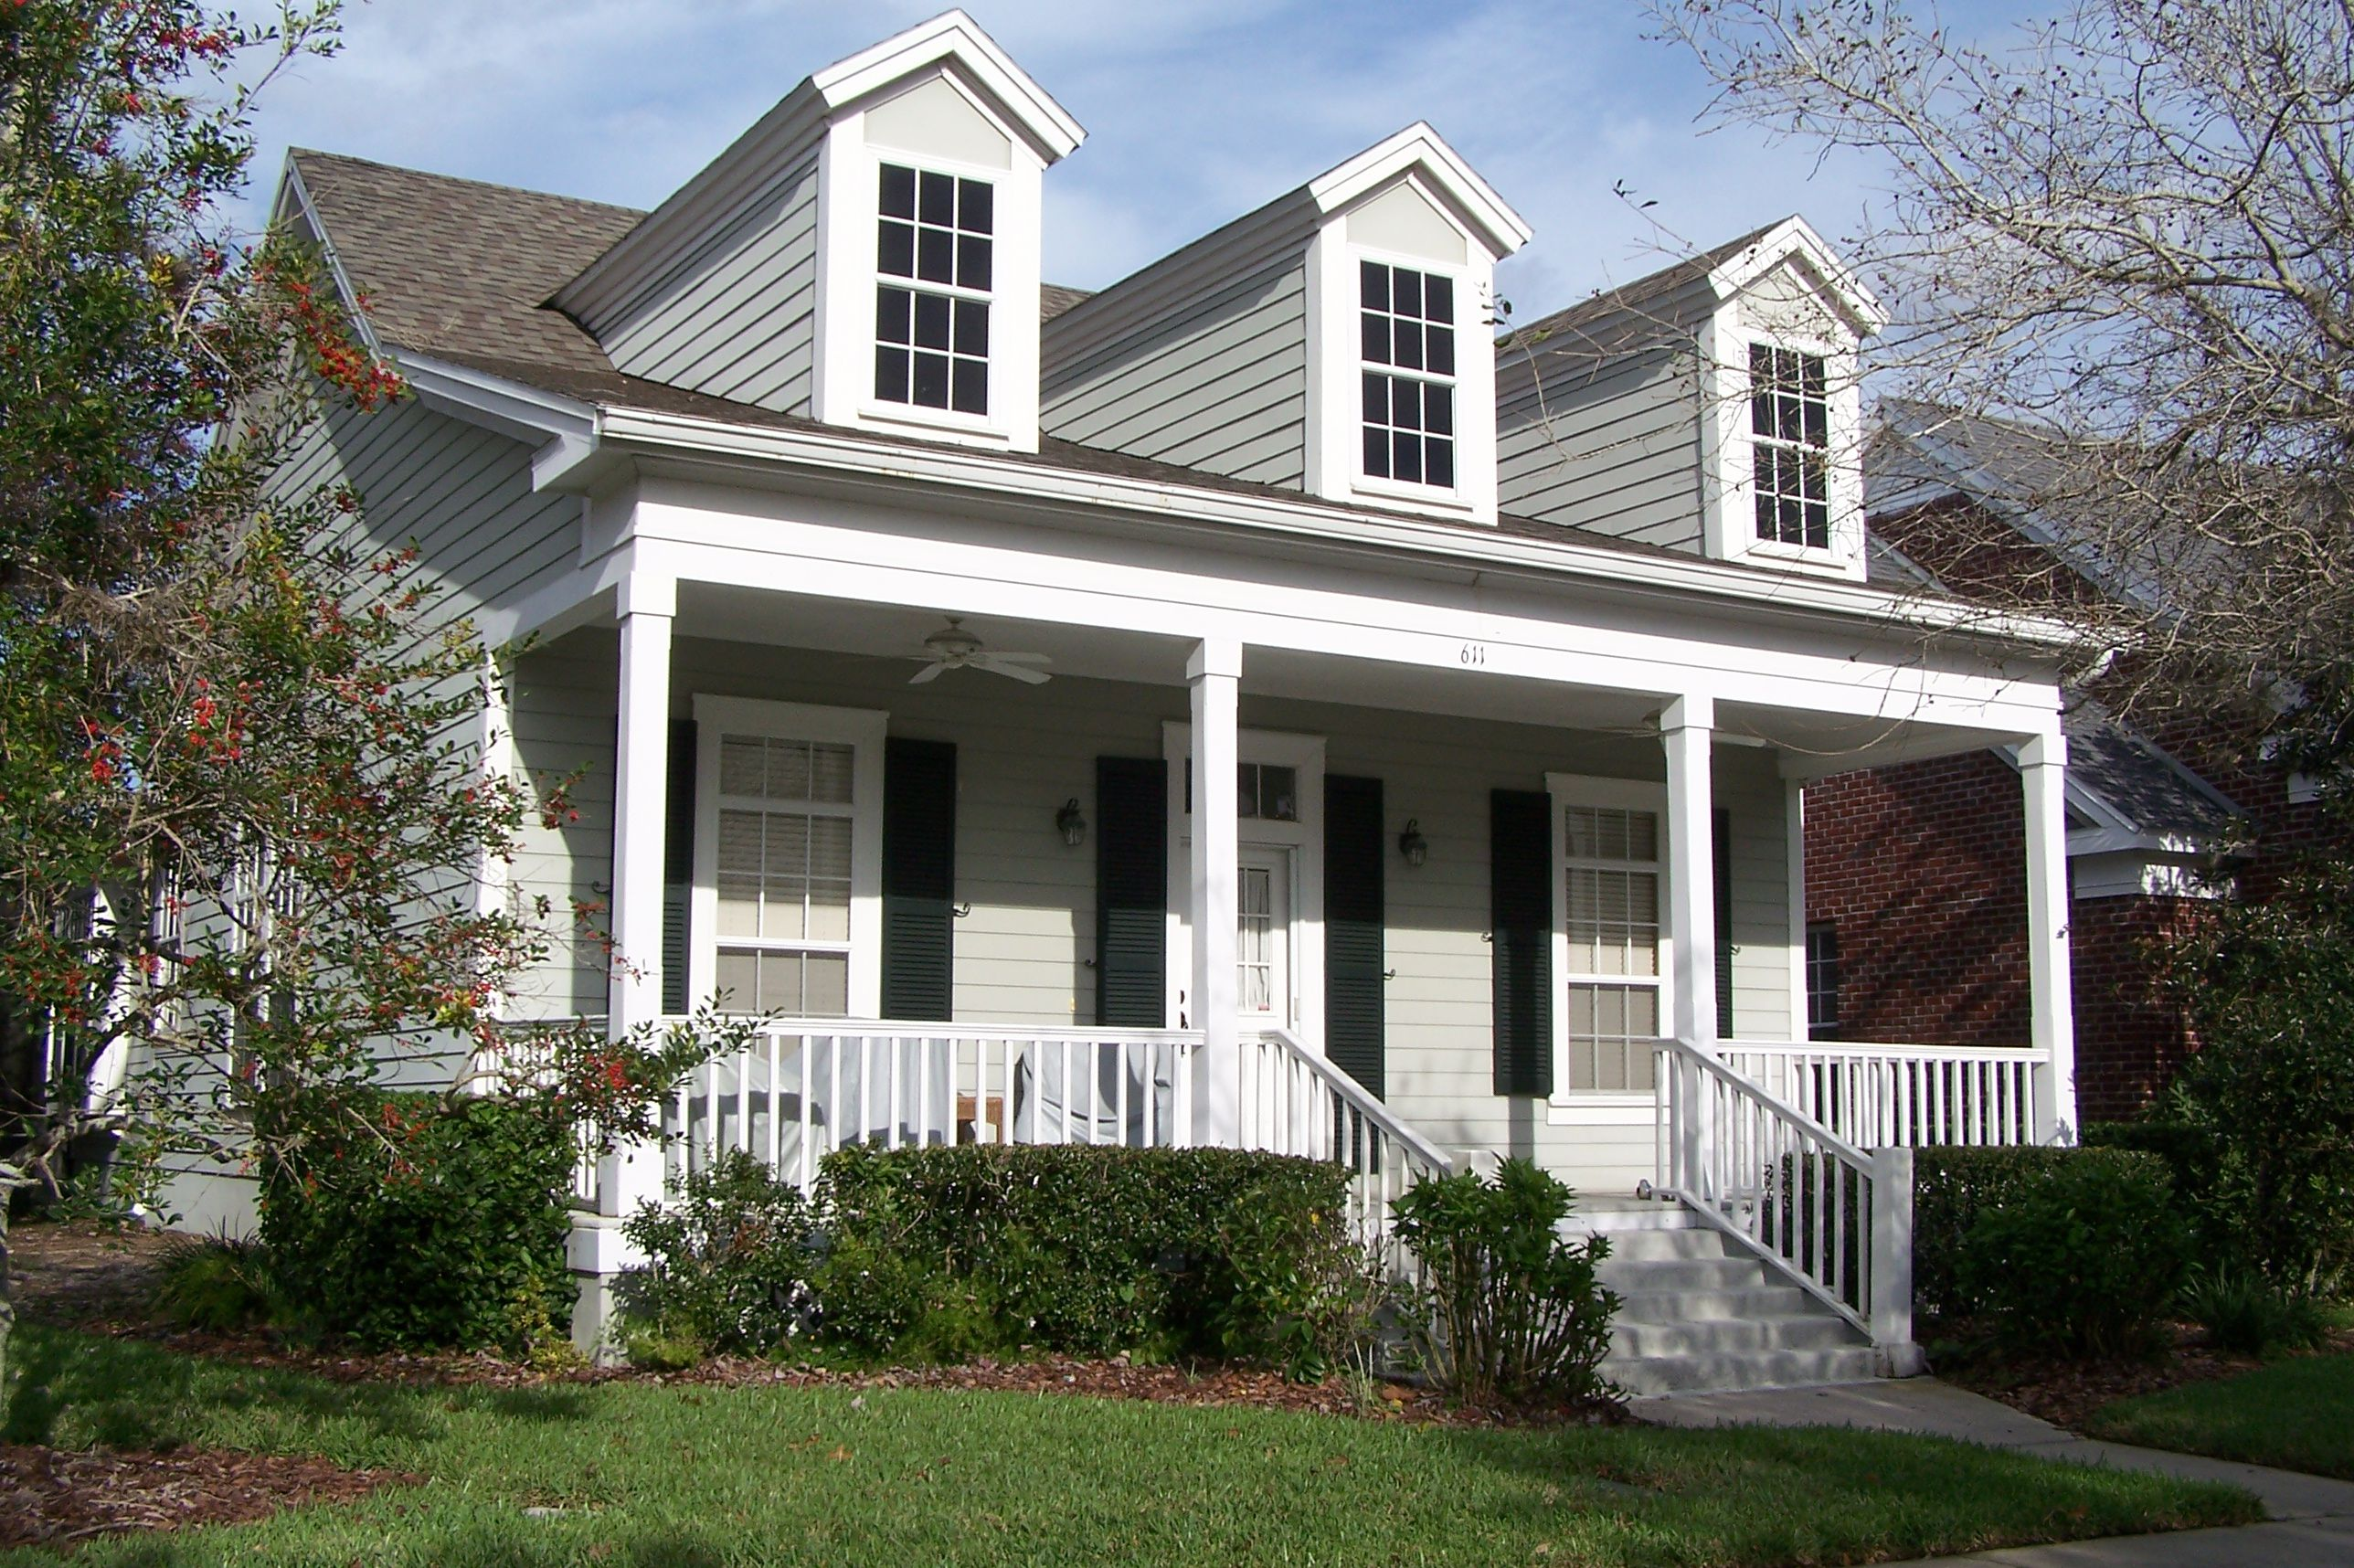 Three front dormers over front porch